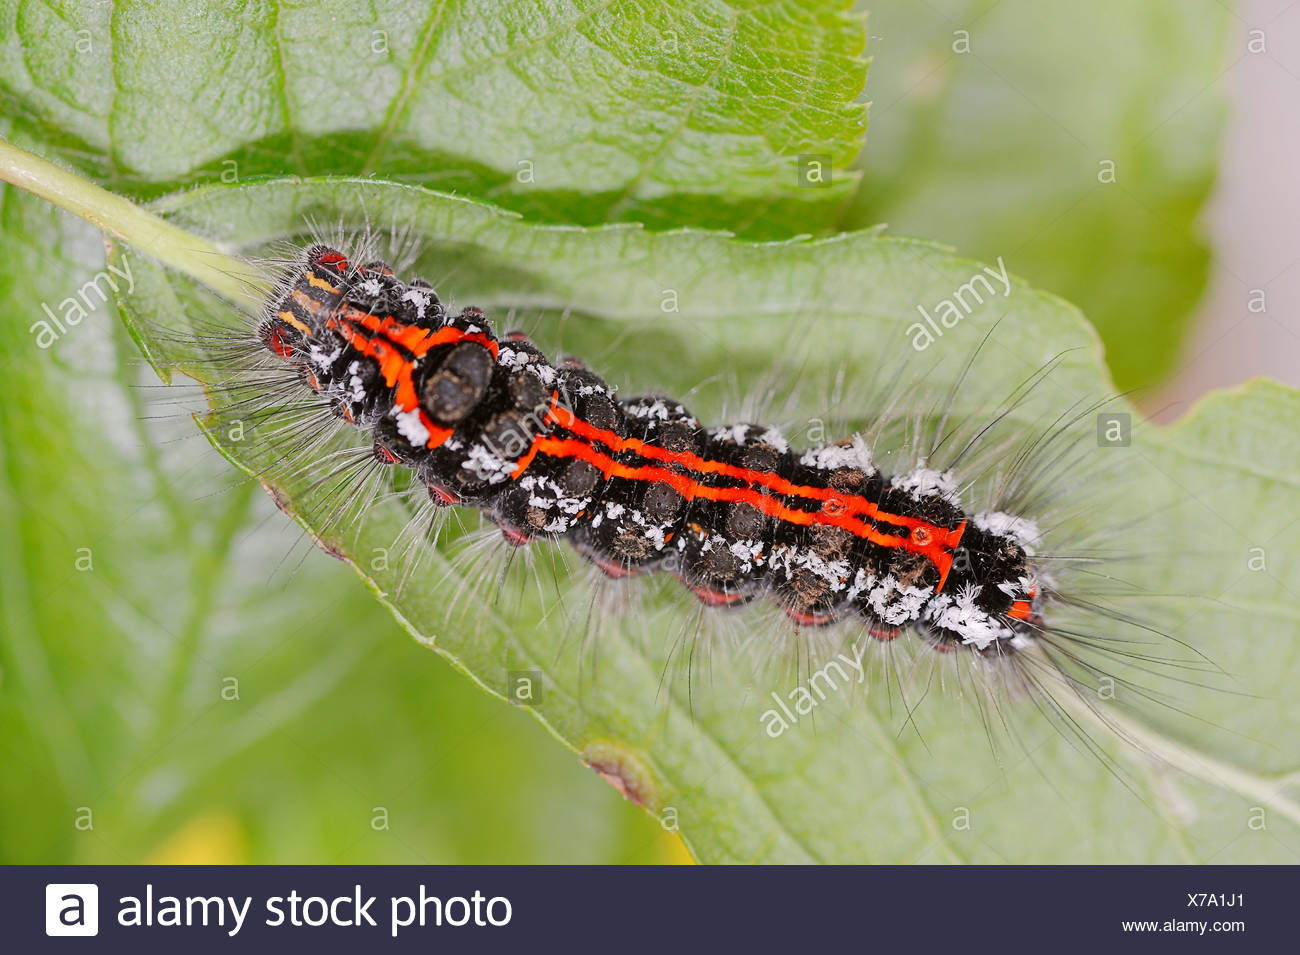 Caterpillar, Yellow-tail or Swan Moth (Euproctis similis), North Rhine-Westphalia, Germany - Stock Image